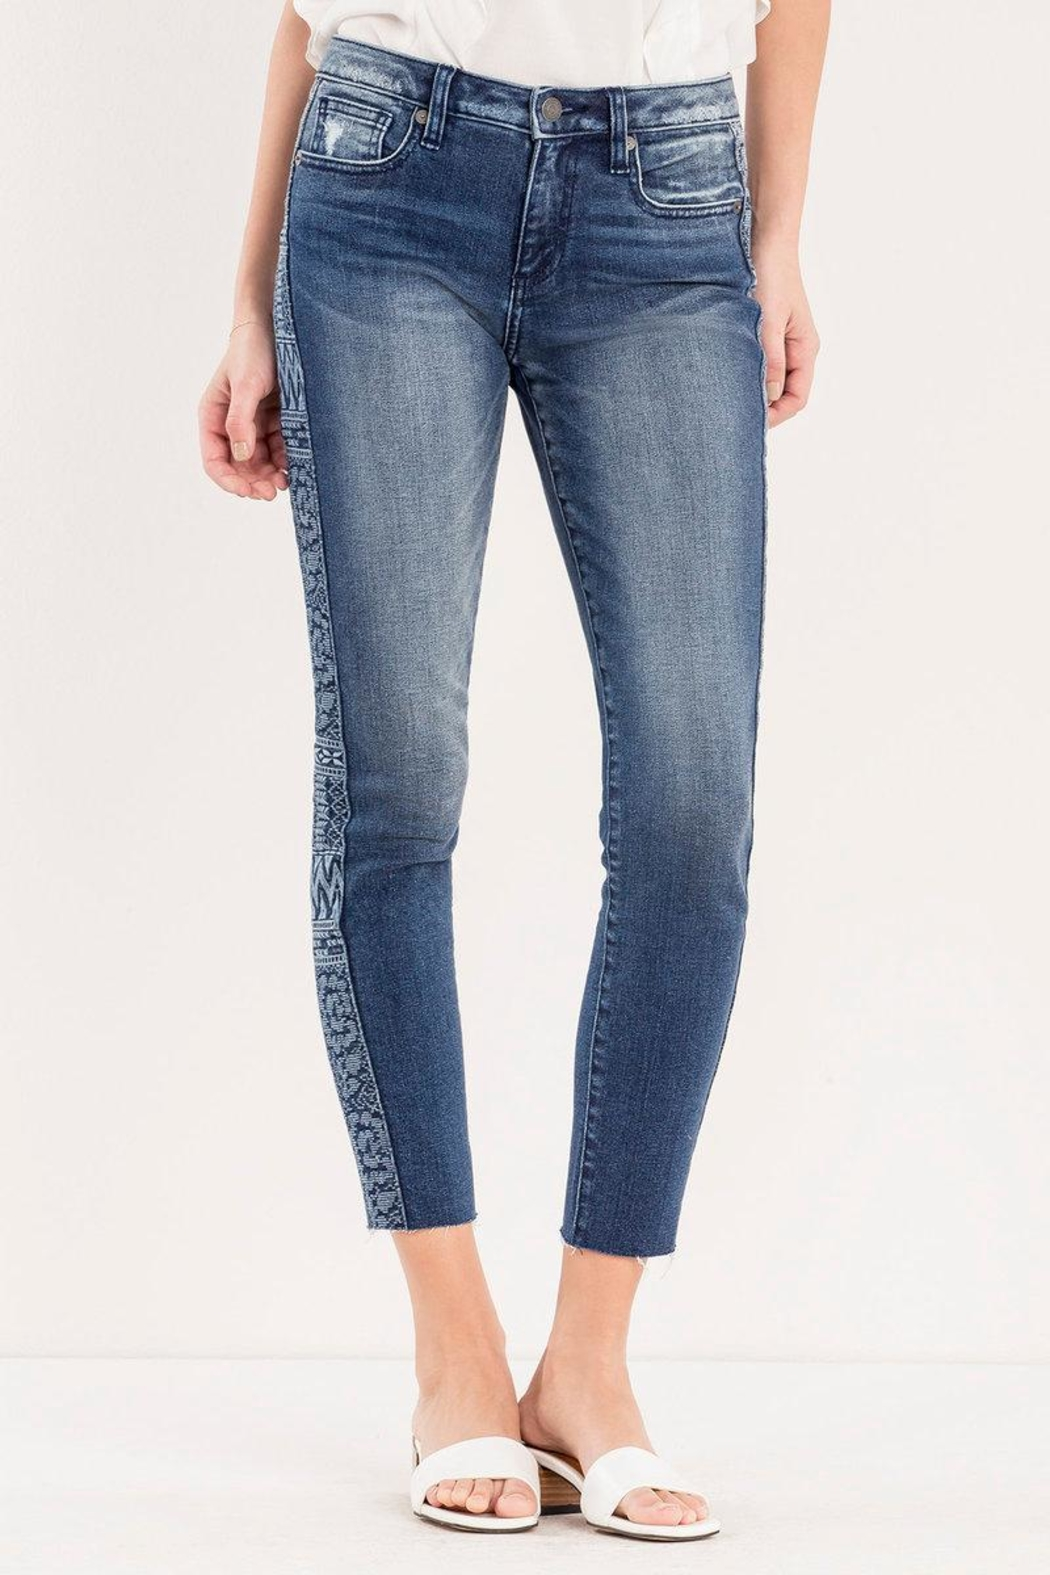 Miss Me Embroidered Side-Seam Ankle-Skinny - Front Full Image